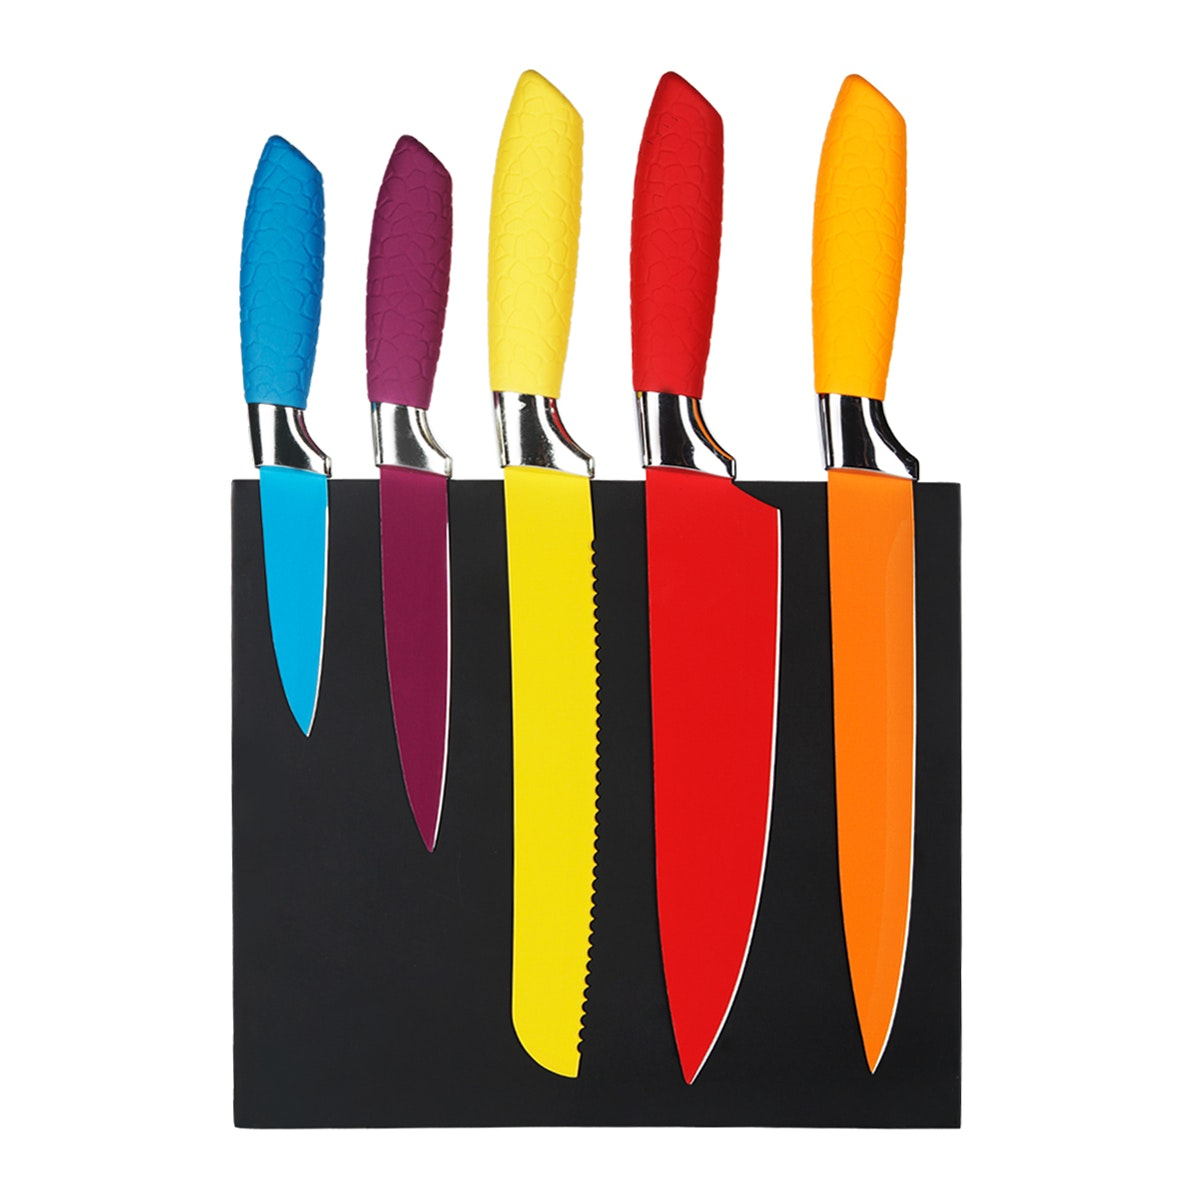 Lotte Mart CT-7 KS087-M 6PCS KNIFE SET